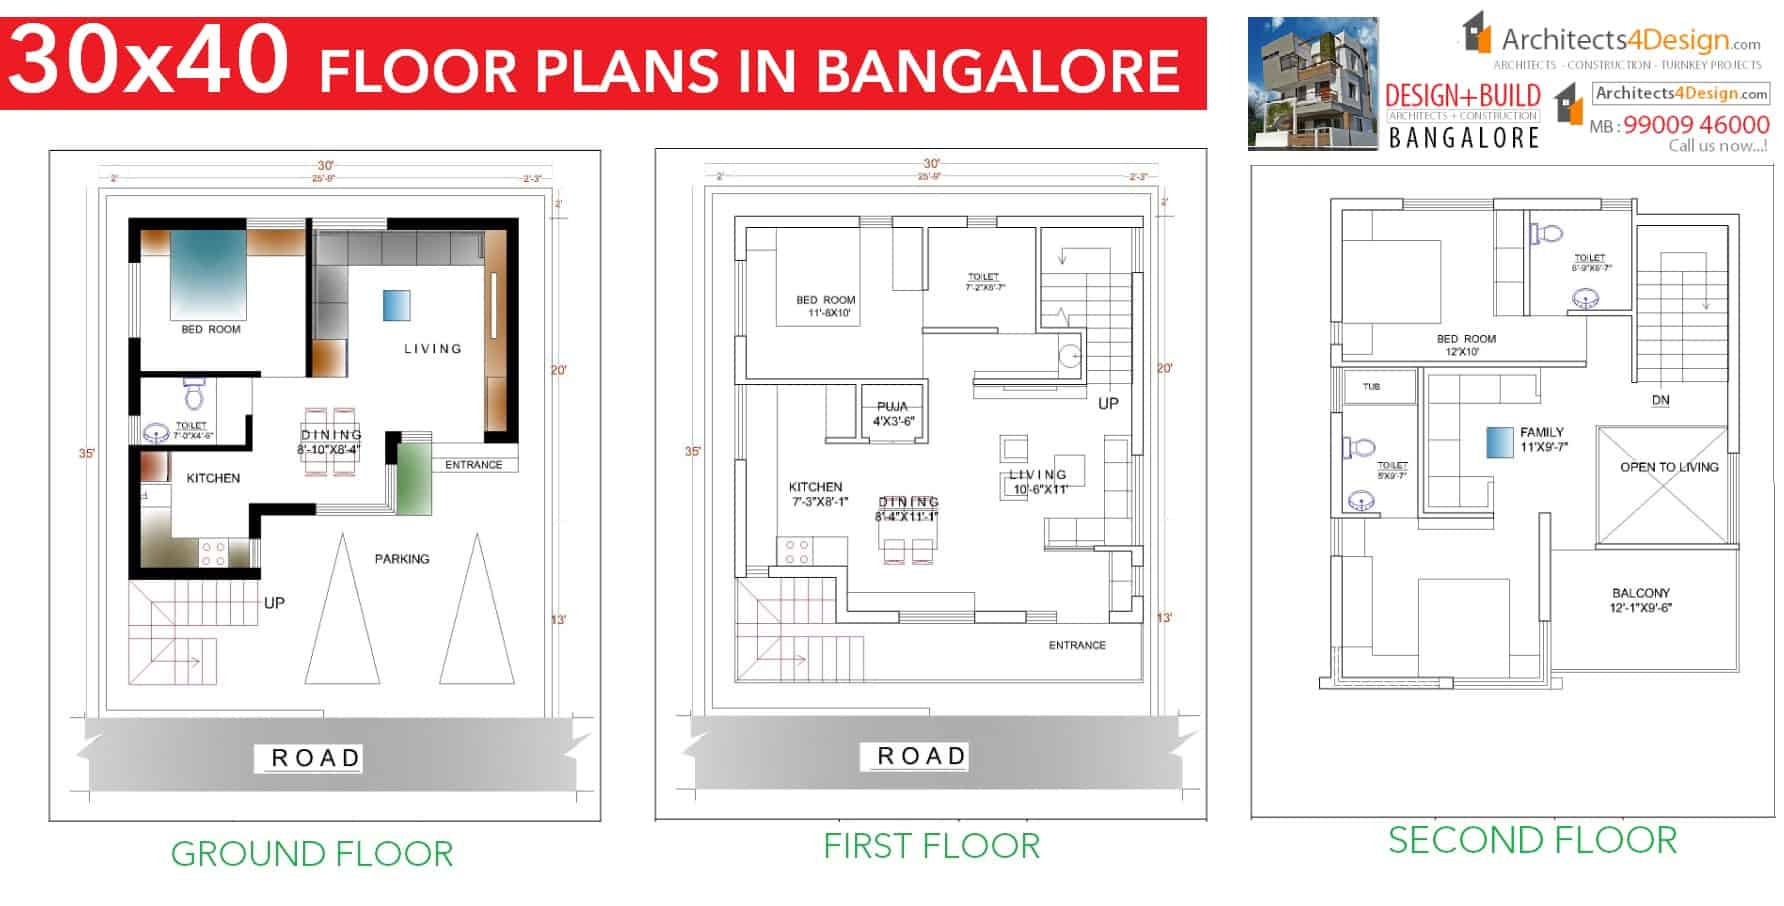 1000 Square Feet Floor Plans 30x40 House Plans In Bangalore For G 1 G 2 G 3 G 4 Floors